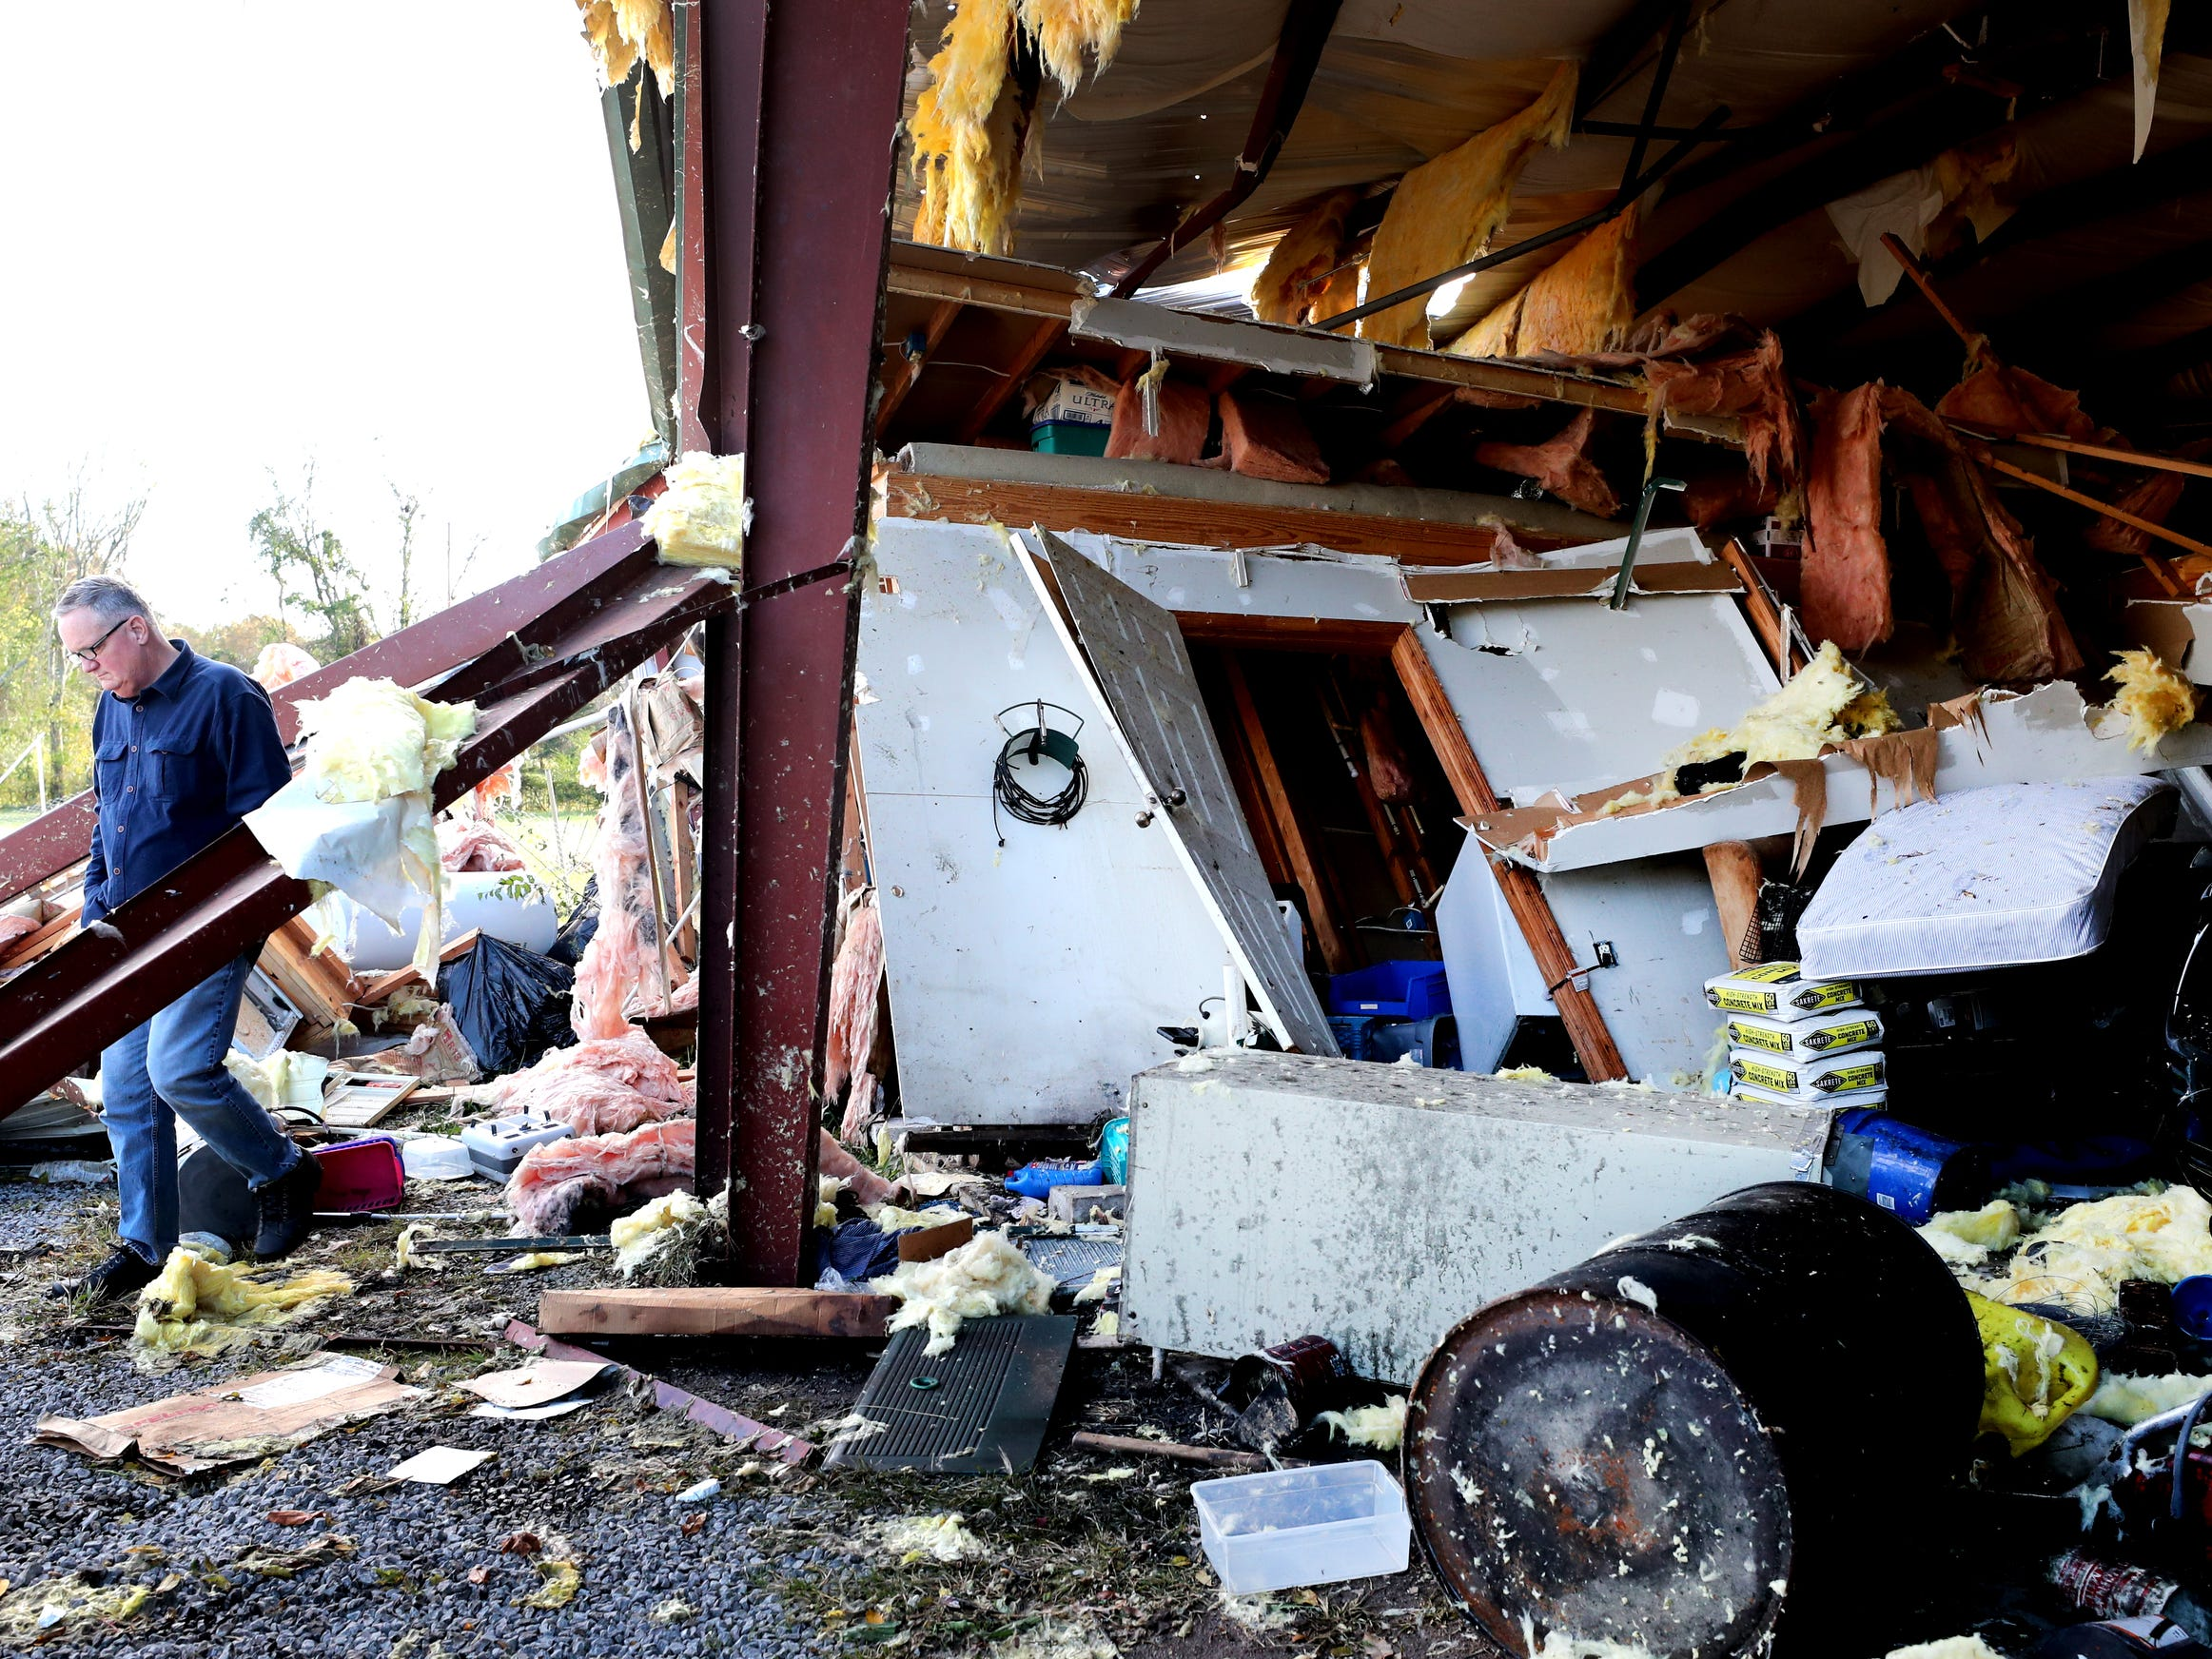 Billy Grimes Jr. shows off tornado damage to a work shed owned by friends Hank and Ava Jordan at the Jordan home along Rock Springs Midland Road in Christiana, Tenn. on Tuesday, Nov. 6, 2018.